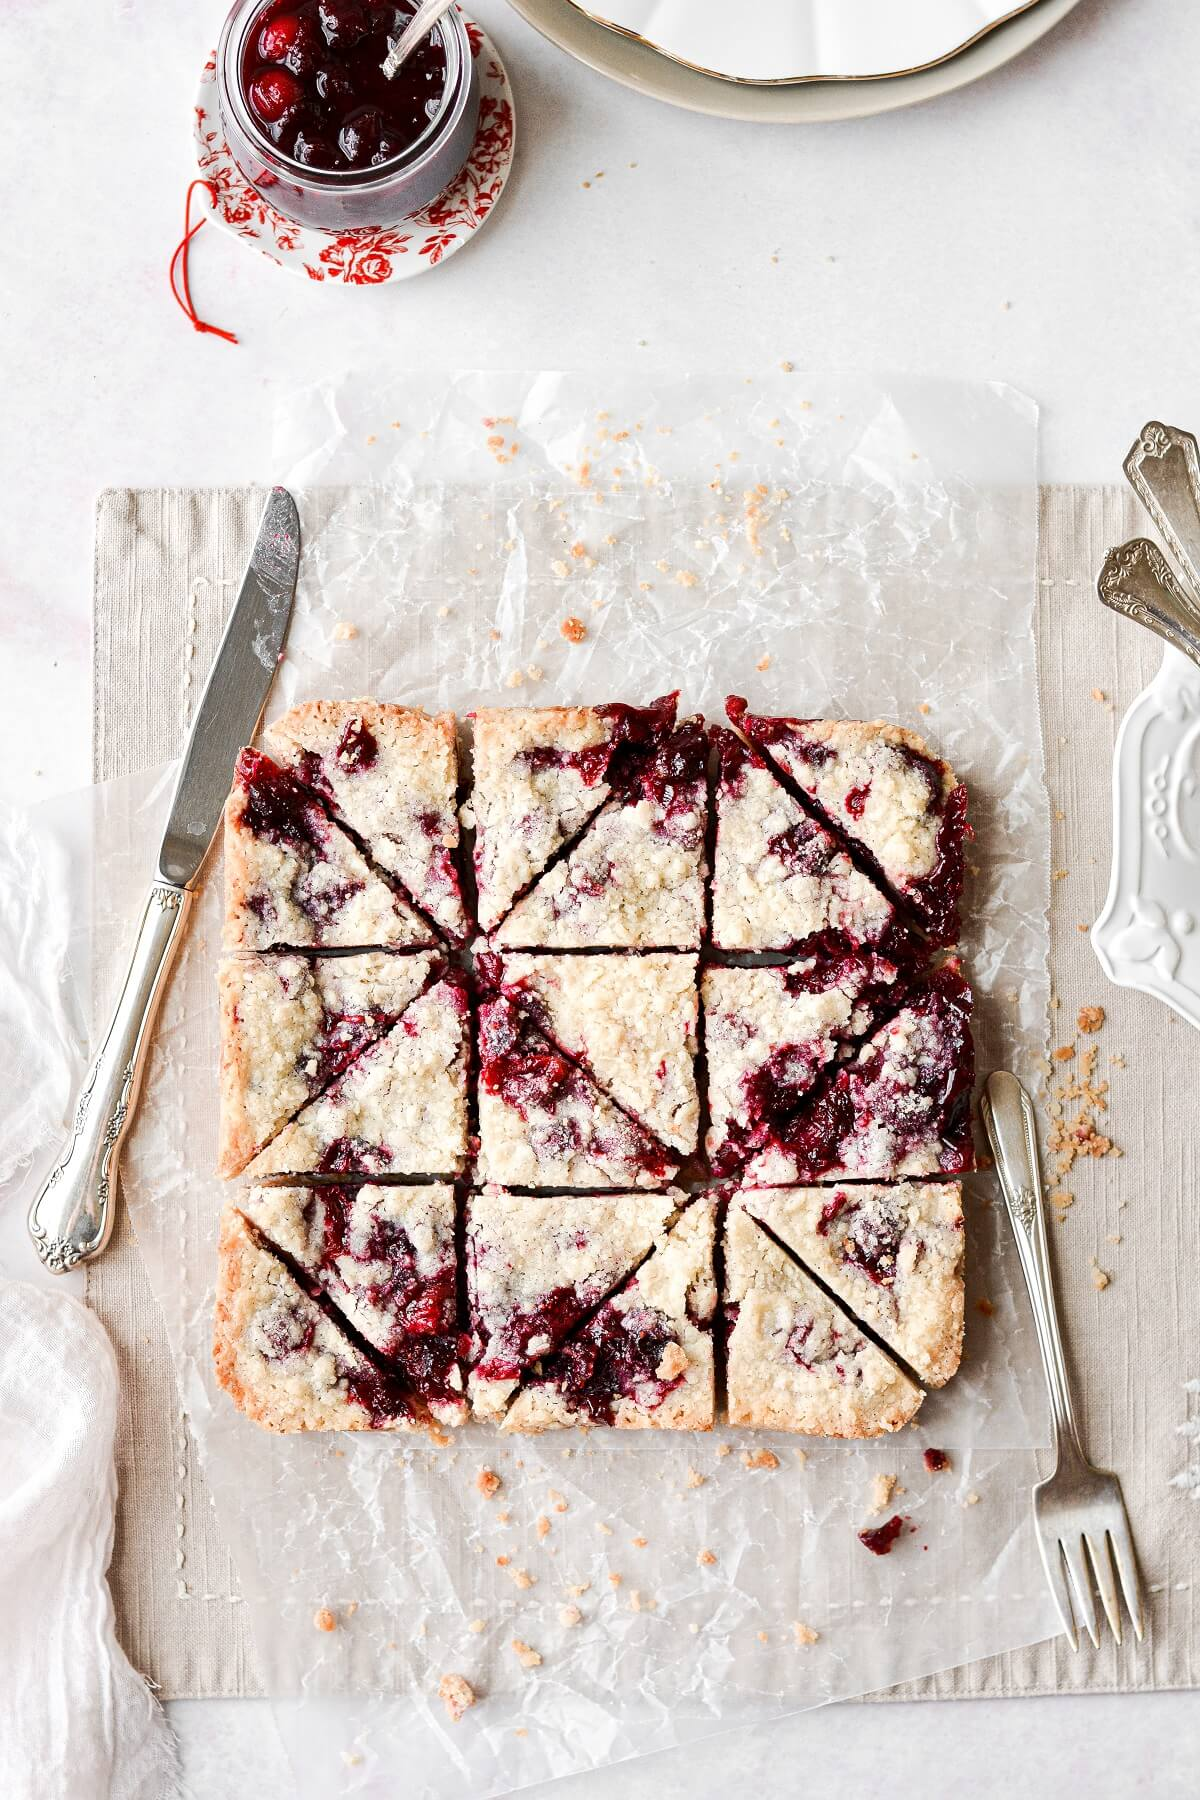 Cranberry almond crumb bars, cut into triangles.